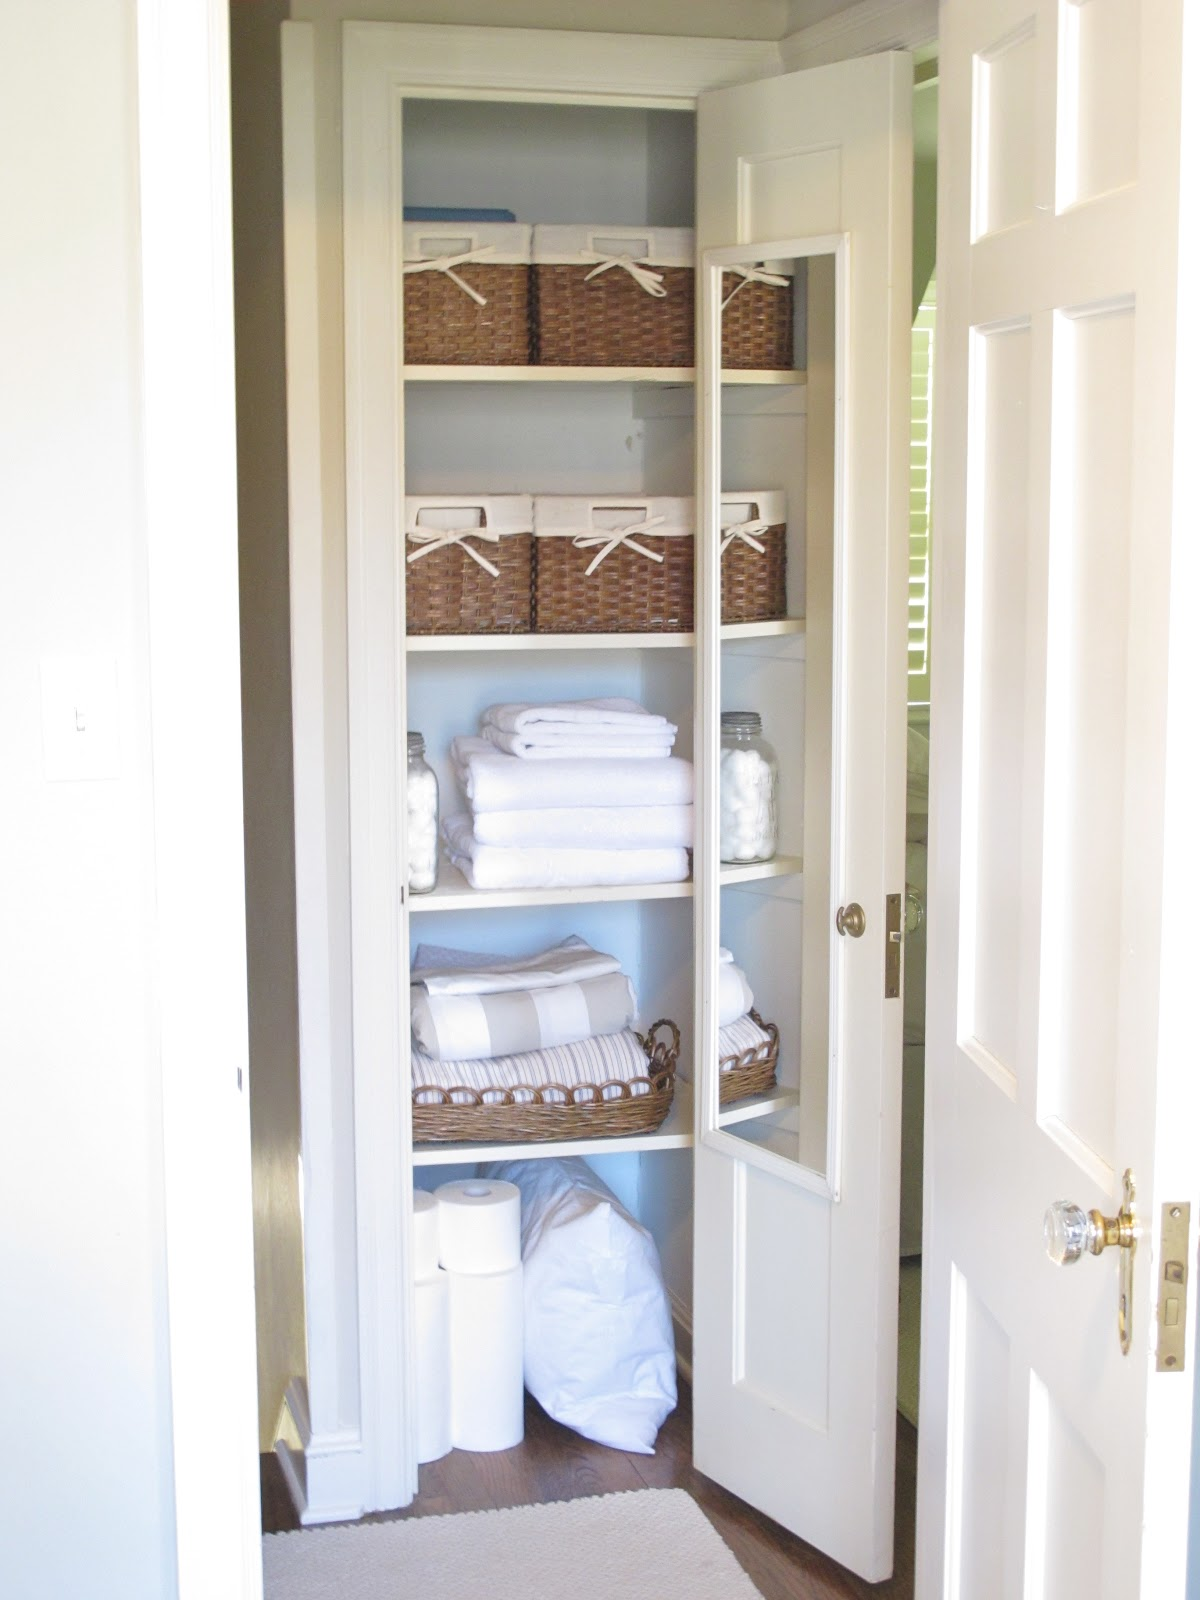 Le Meilleur Small Bedroom Closet Organization Ideas Homesfeed Ce Mois Ci